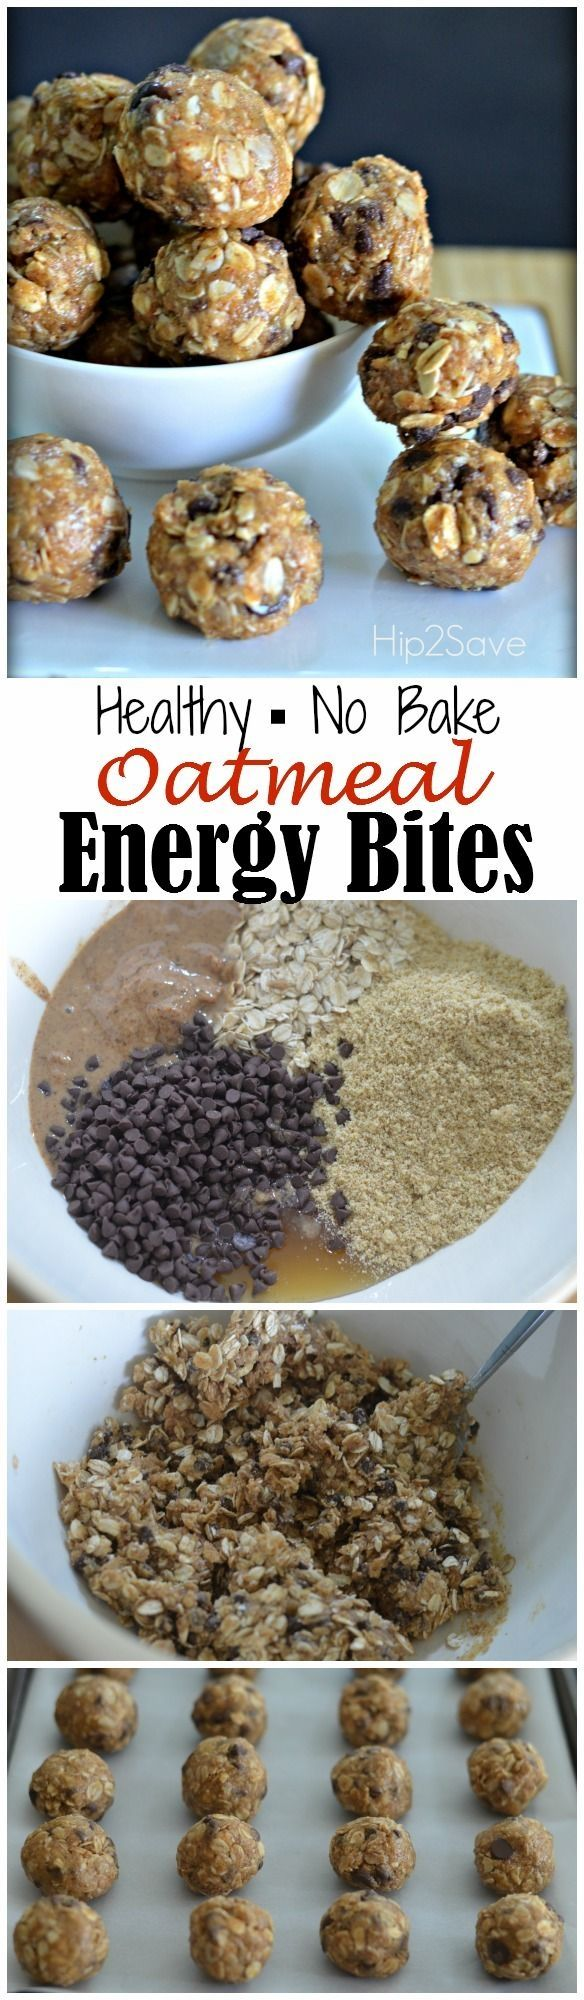 Oatmeal Energy Bites that is great when you're on the road or your kids need a healthy snack. ( An Easy No-Bake Snack). For more recipes, craft ideas, and coupons you can visit Hip2Save.com #weightloss